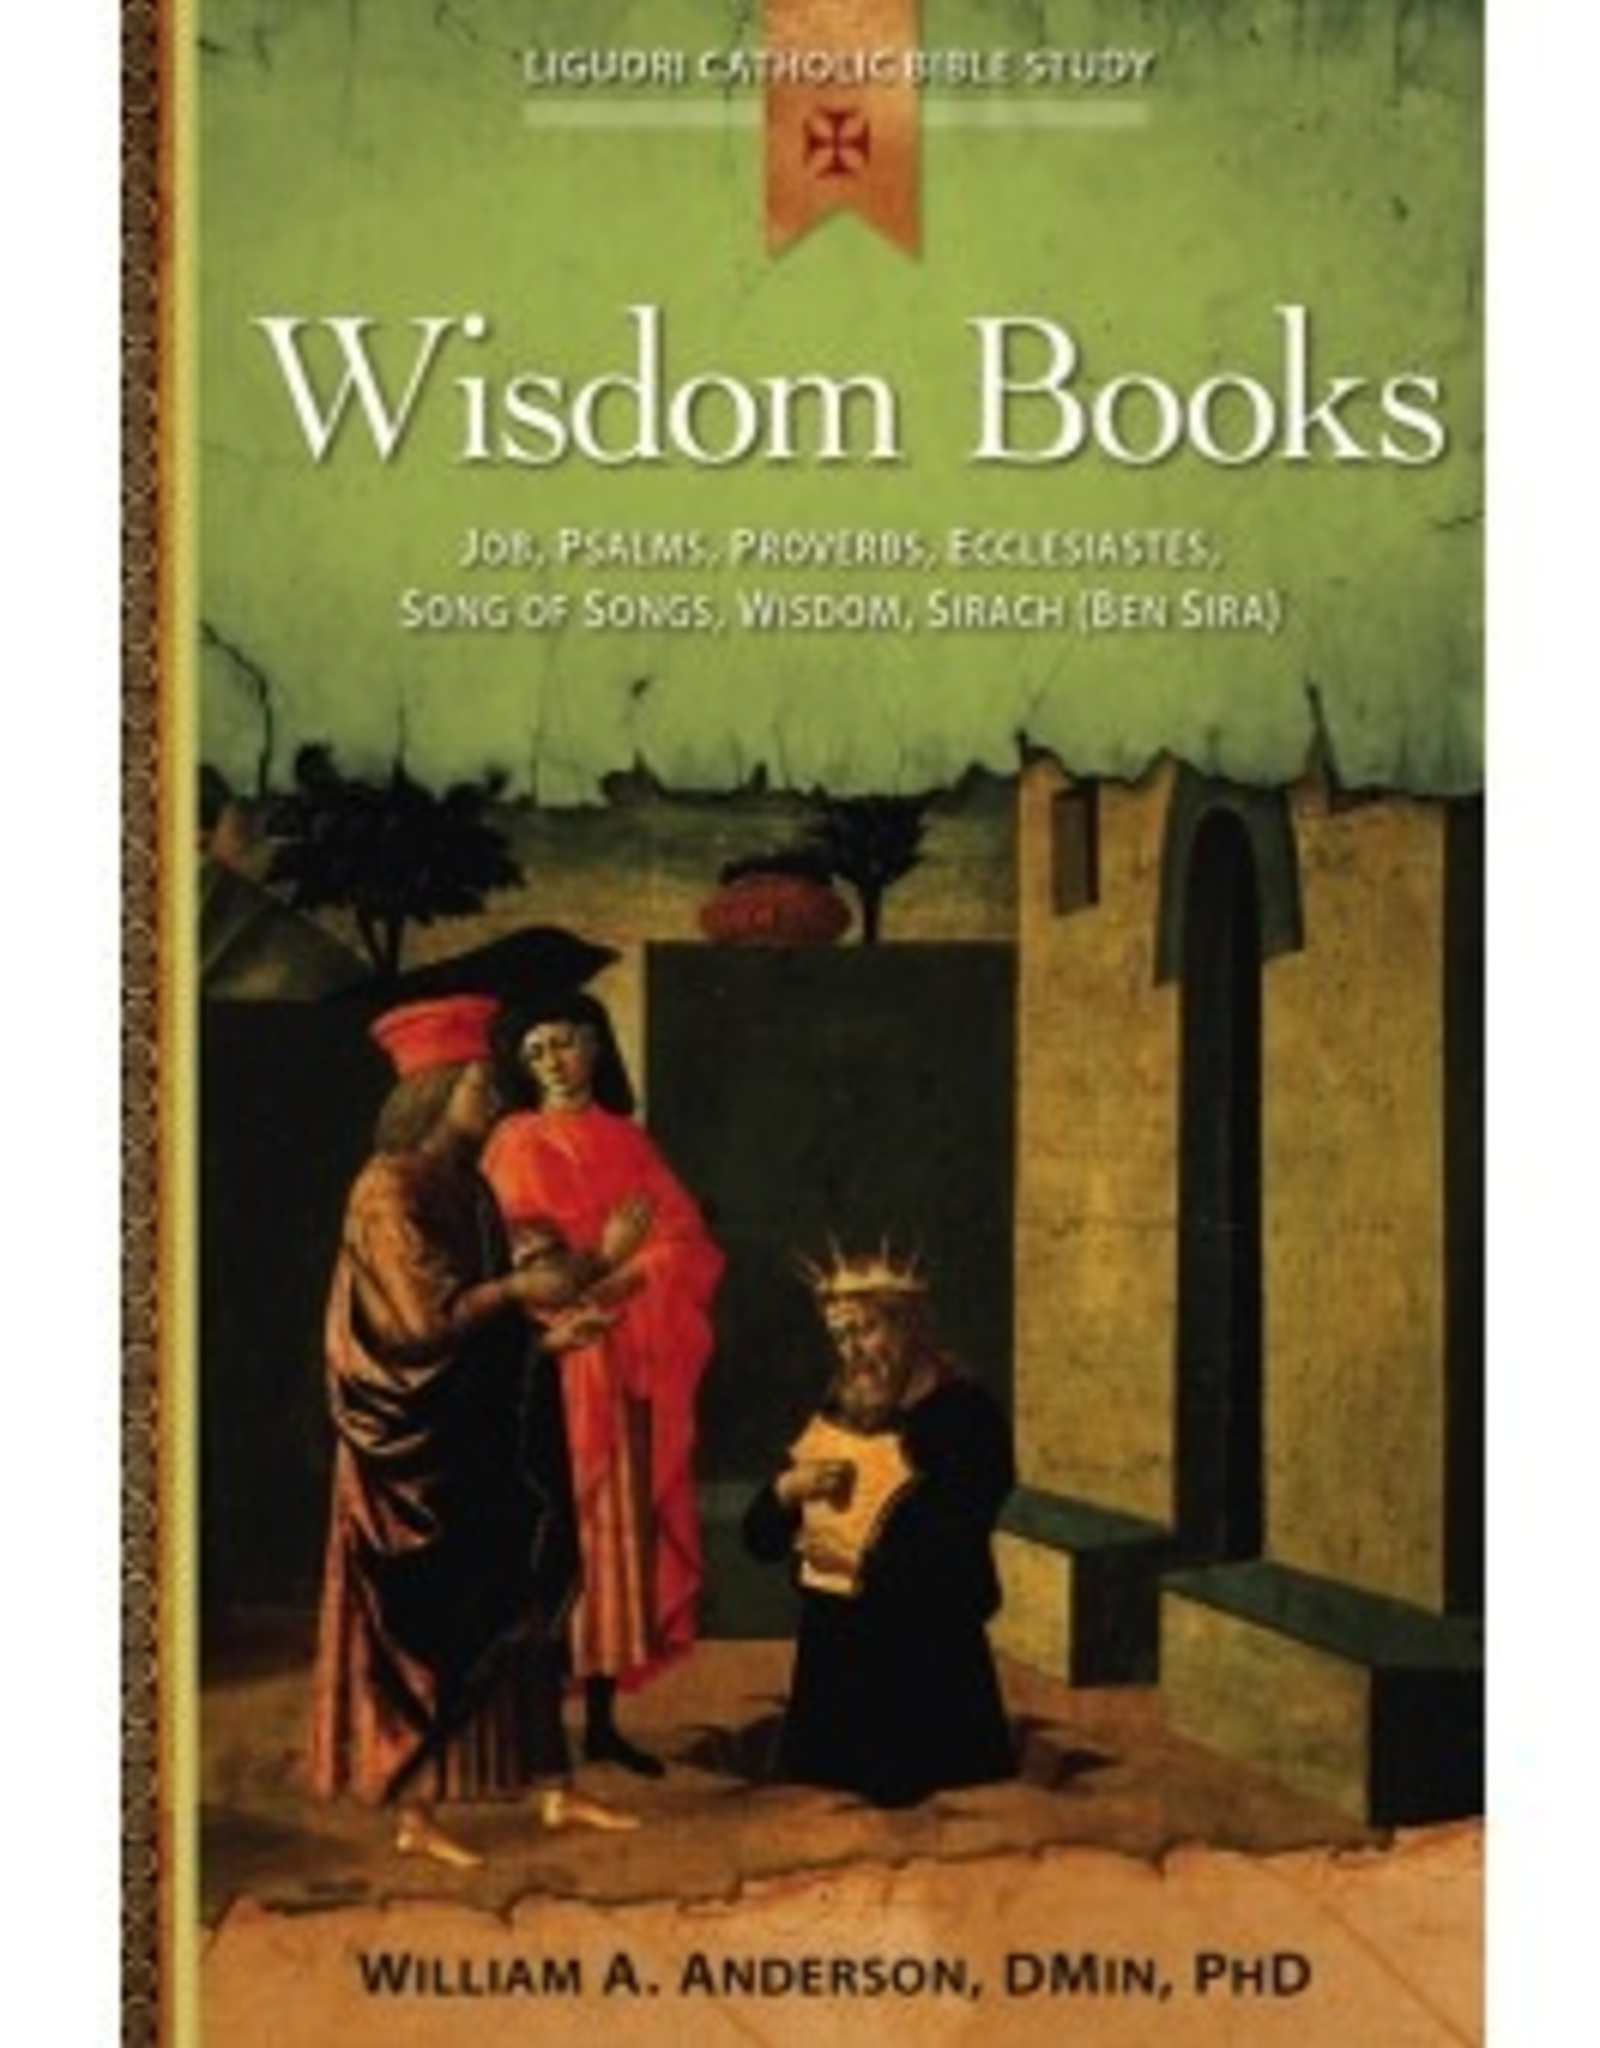 Liguori Wisdom Books:  Job, Psalms, Proverbs, Ecclesiastes, Song of Songs, Wisdom, Sirach (Ben Sira), by William Anderson (paperback)